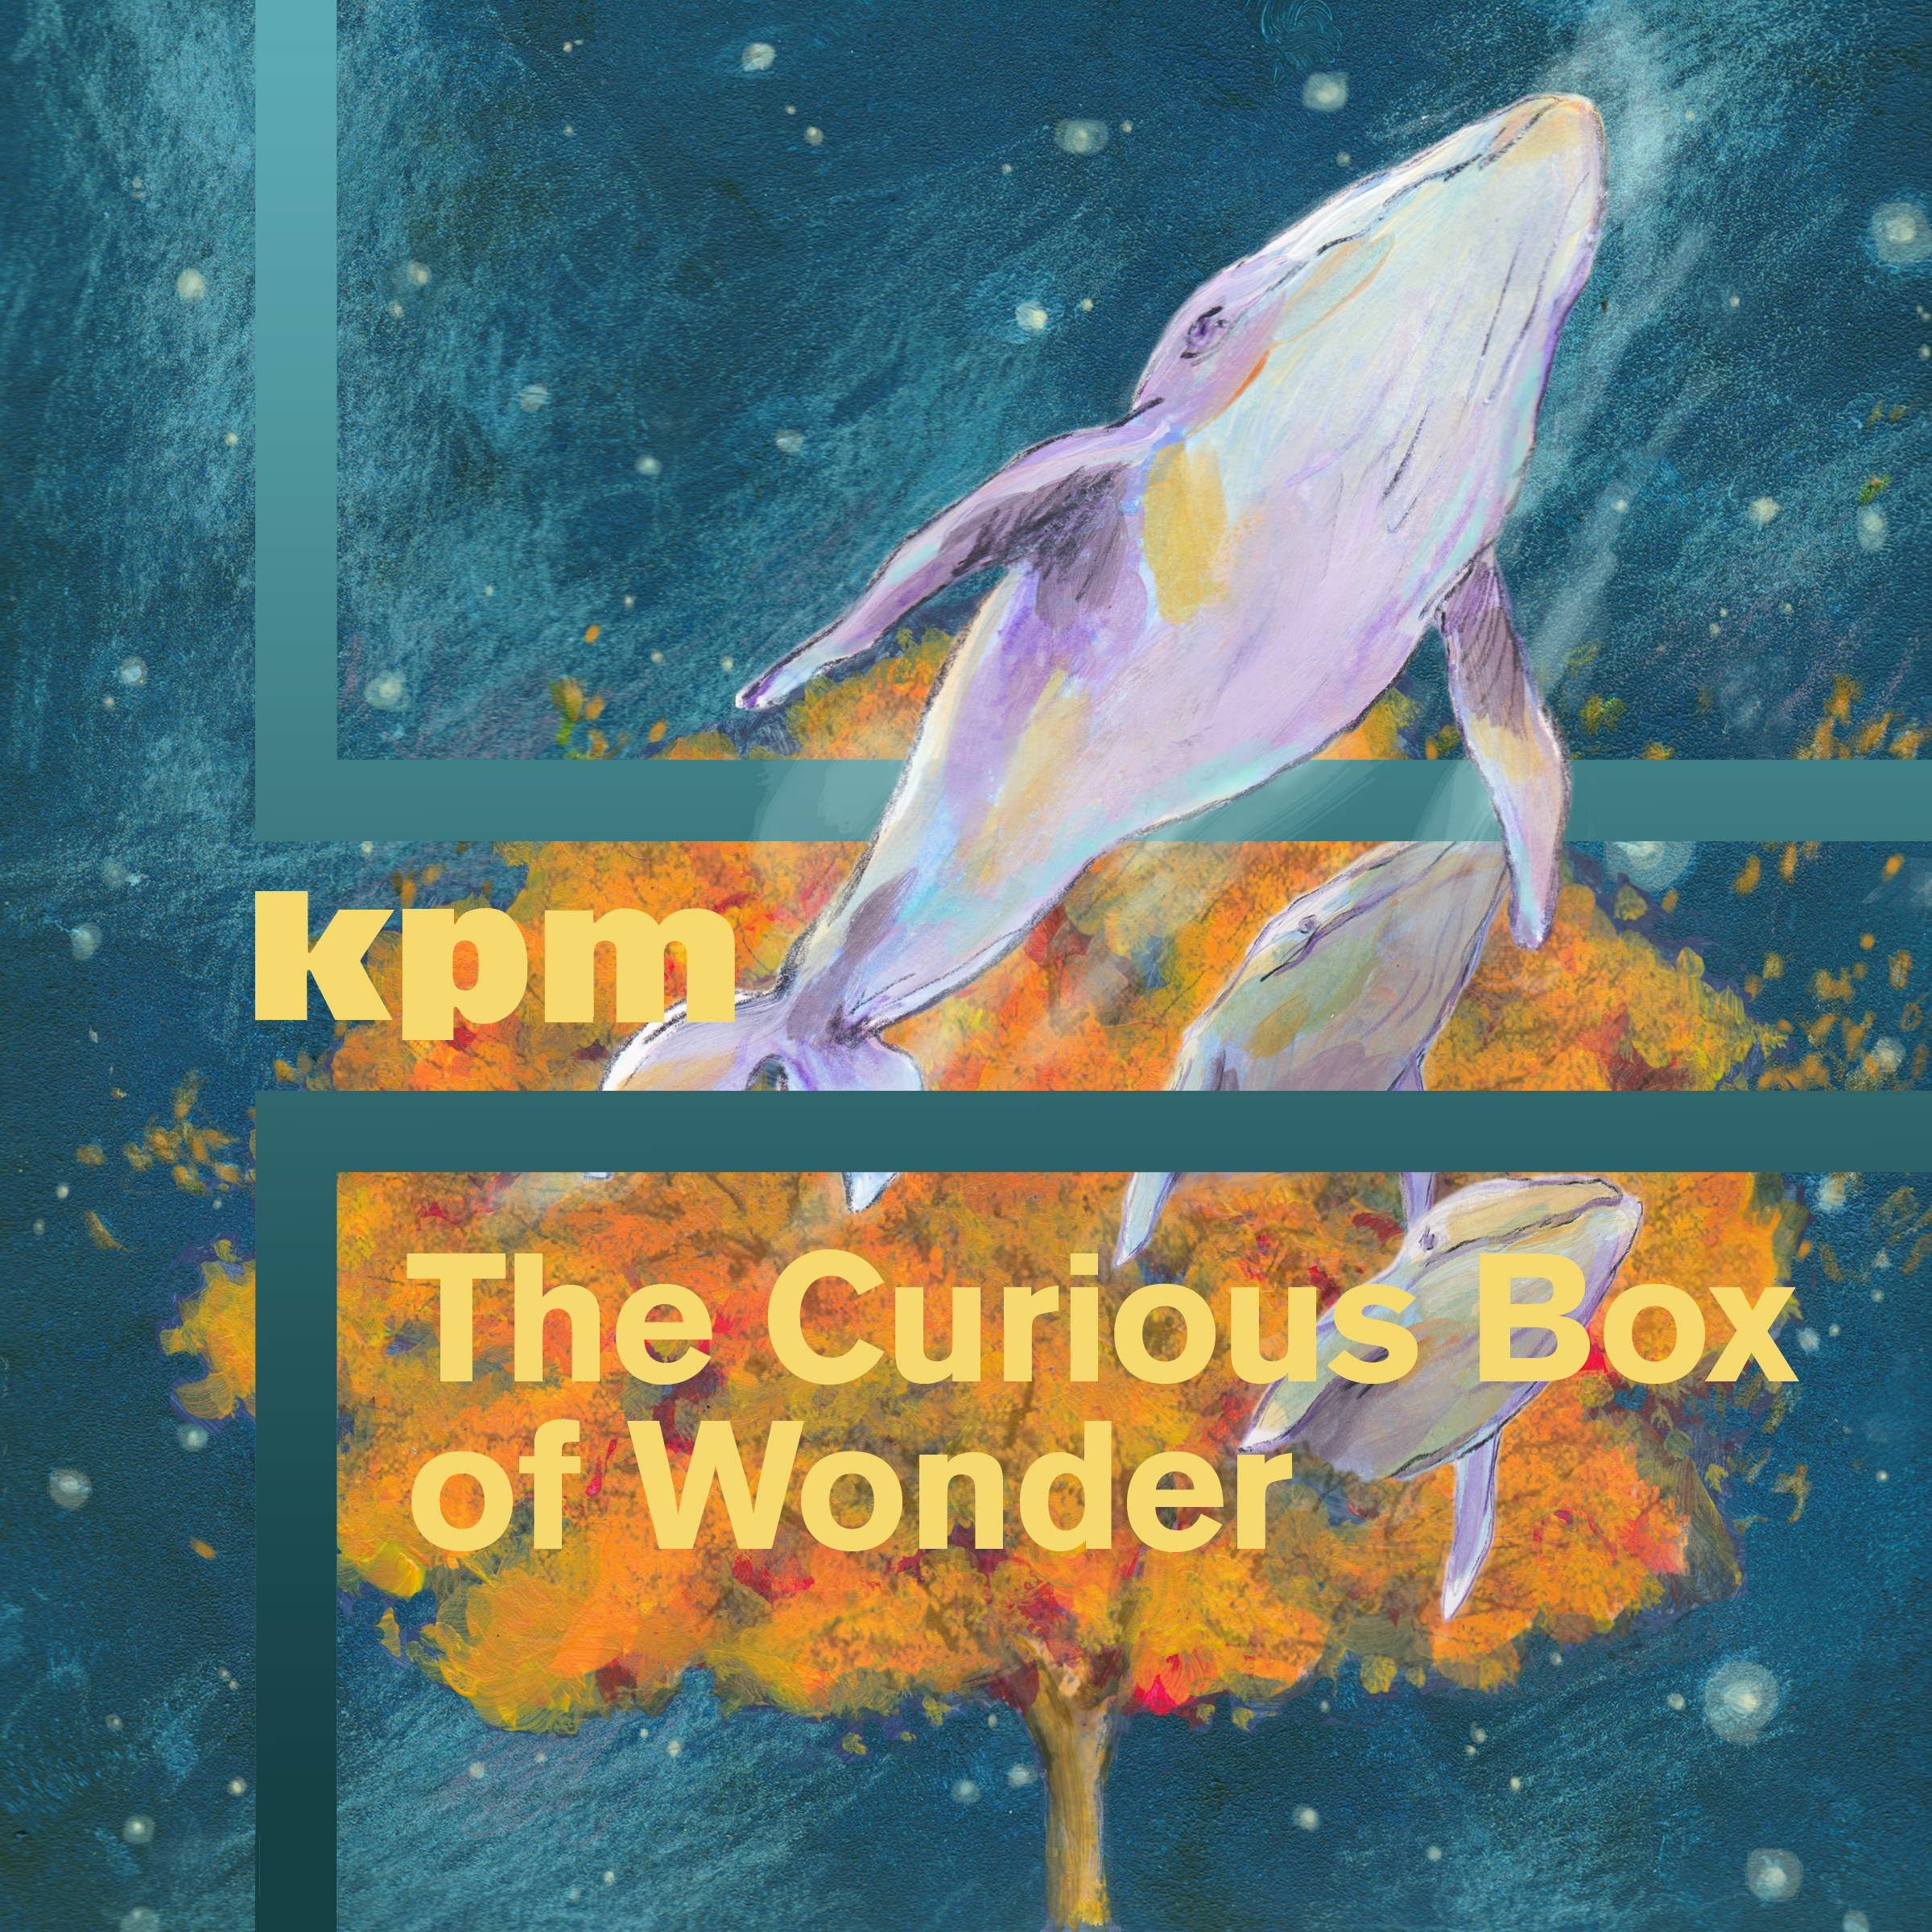 The Curious Box of Wonder